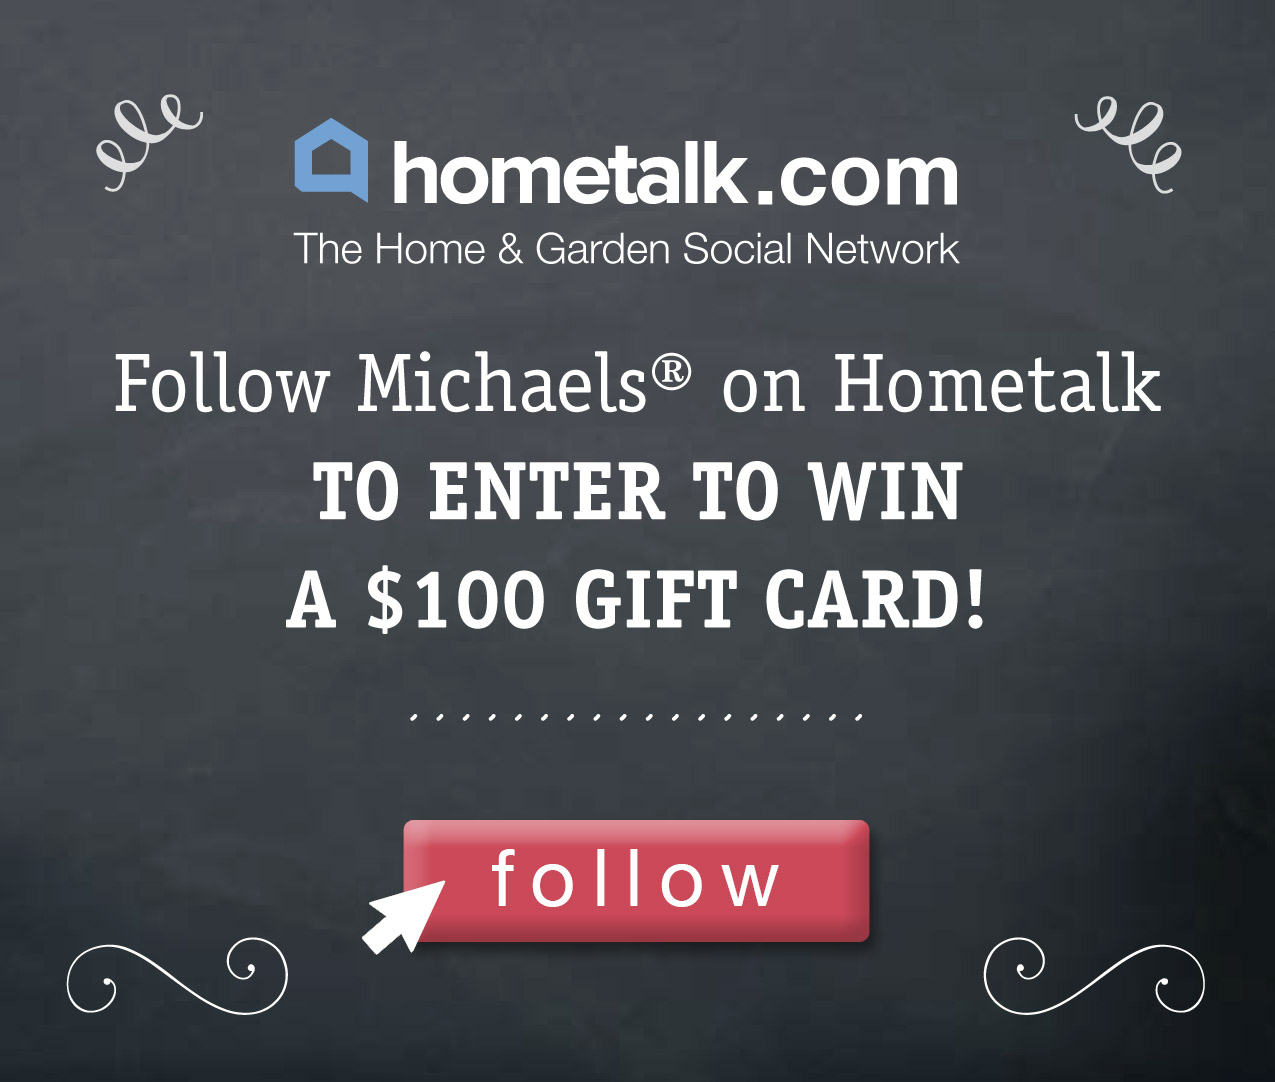 michaels on hometalk